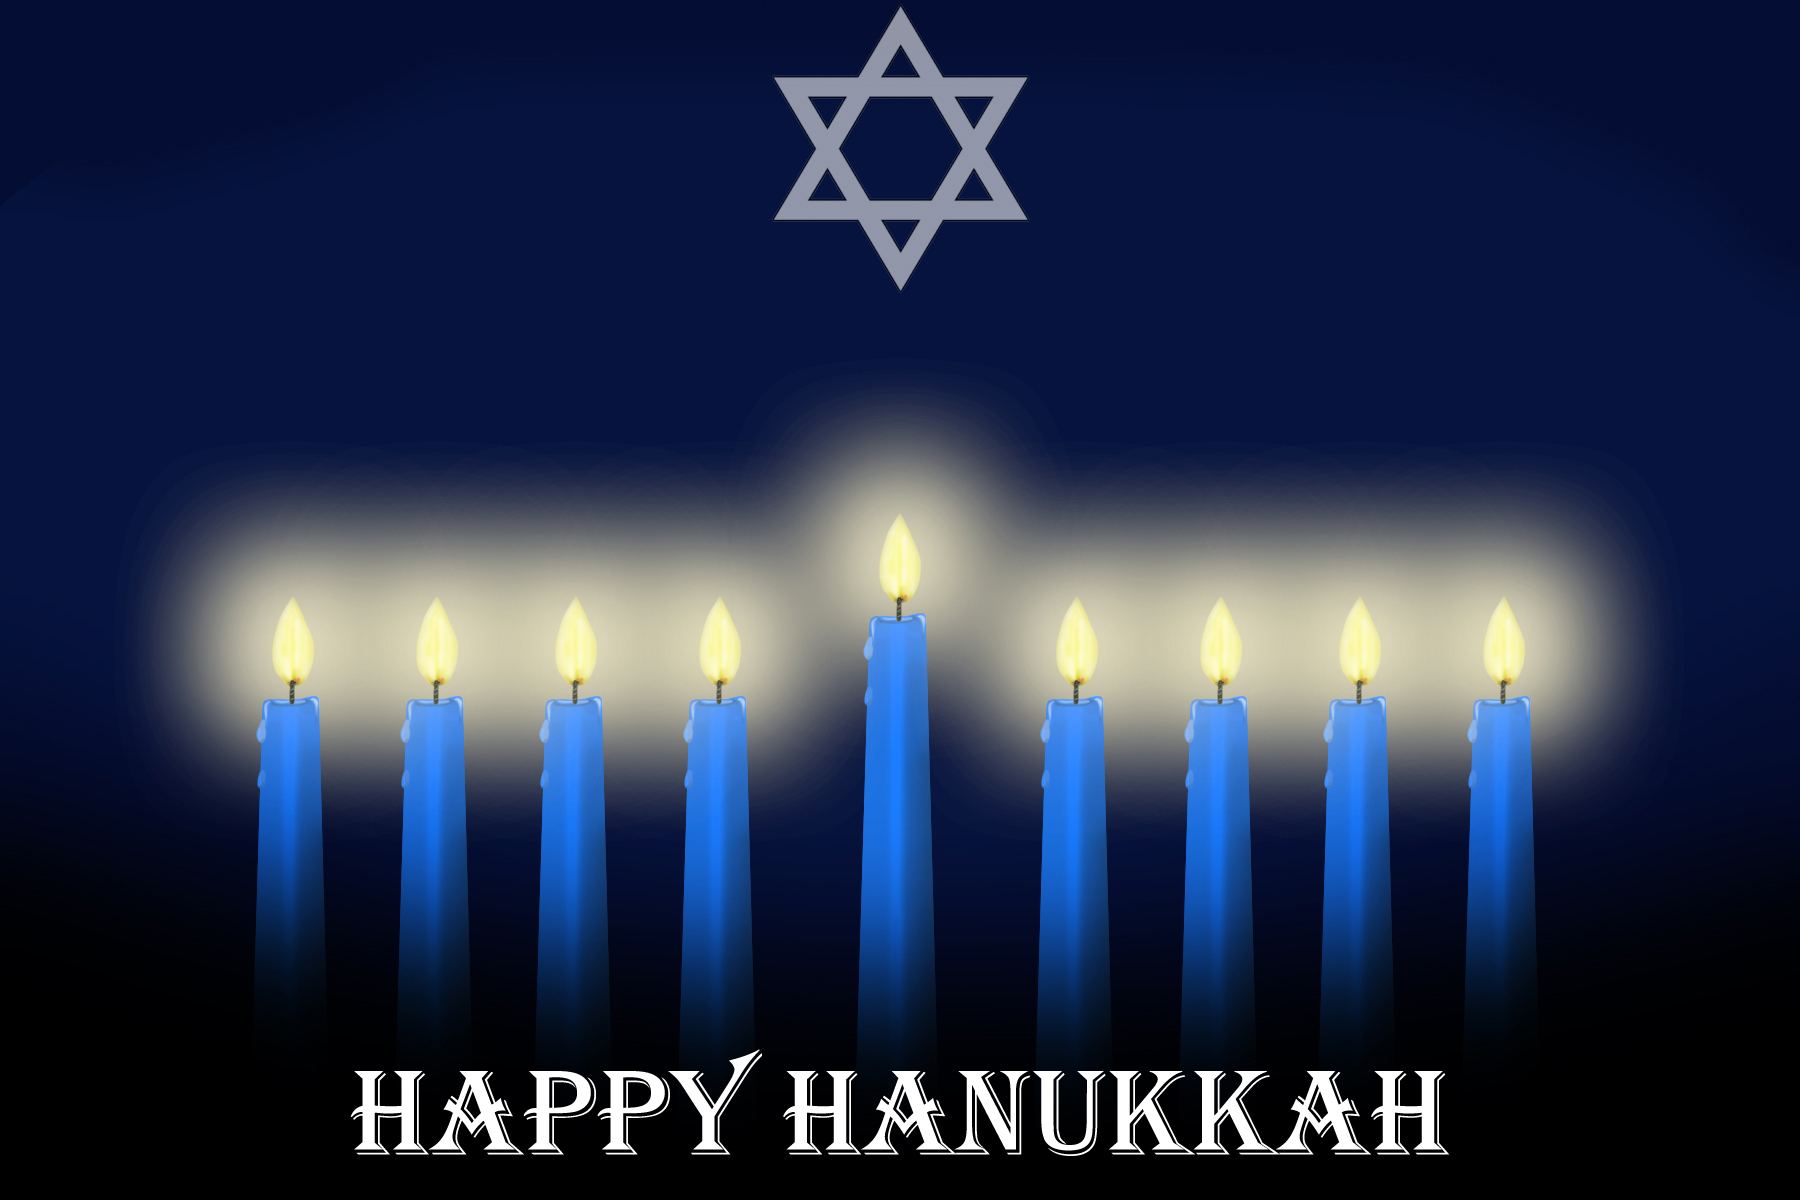 8 happy hanukkah images to post on social media investorplace hanukkah images happy hanukkah images m4hsunfo